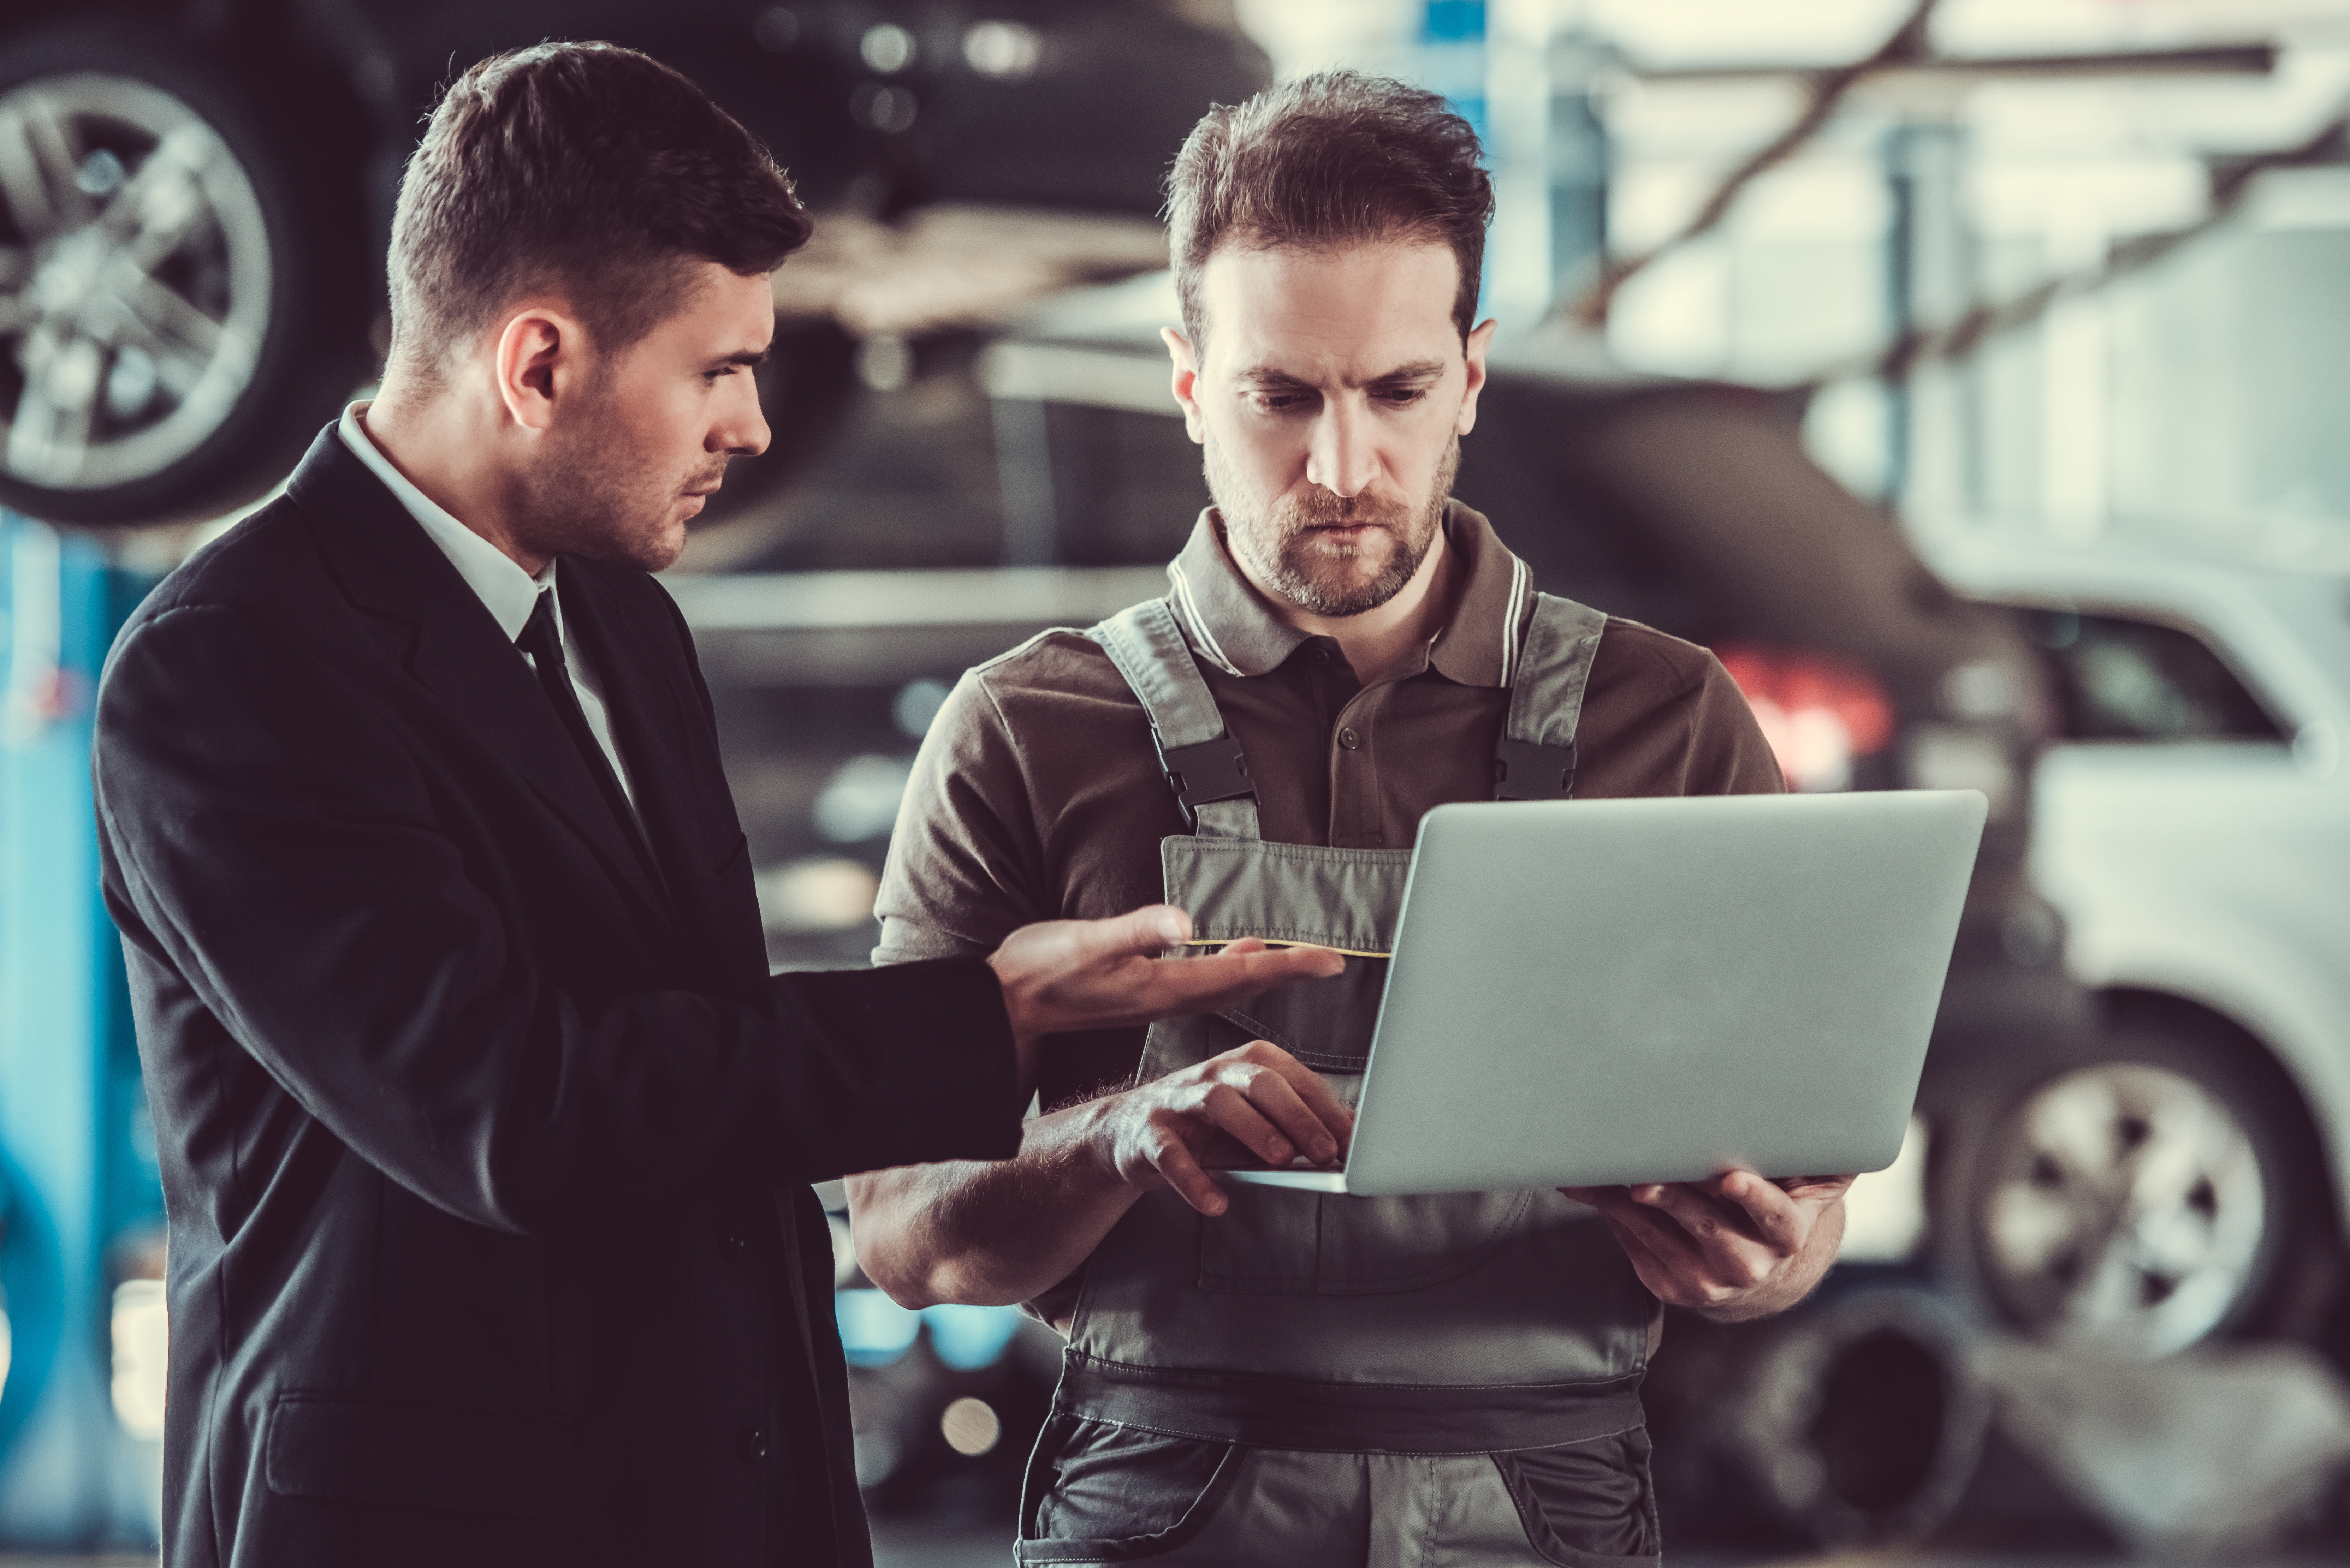 A man in a business suit is pointing to the laptop that is help by a worker in a jumpsuit.